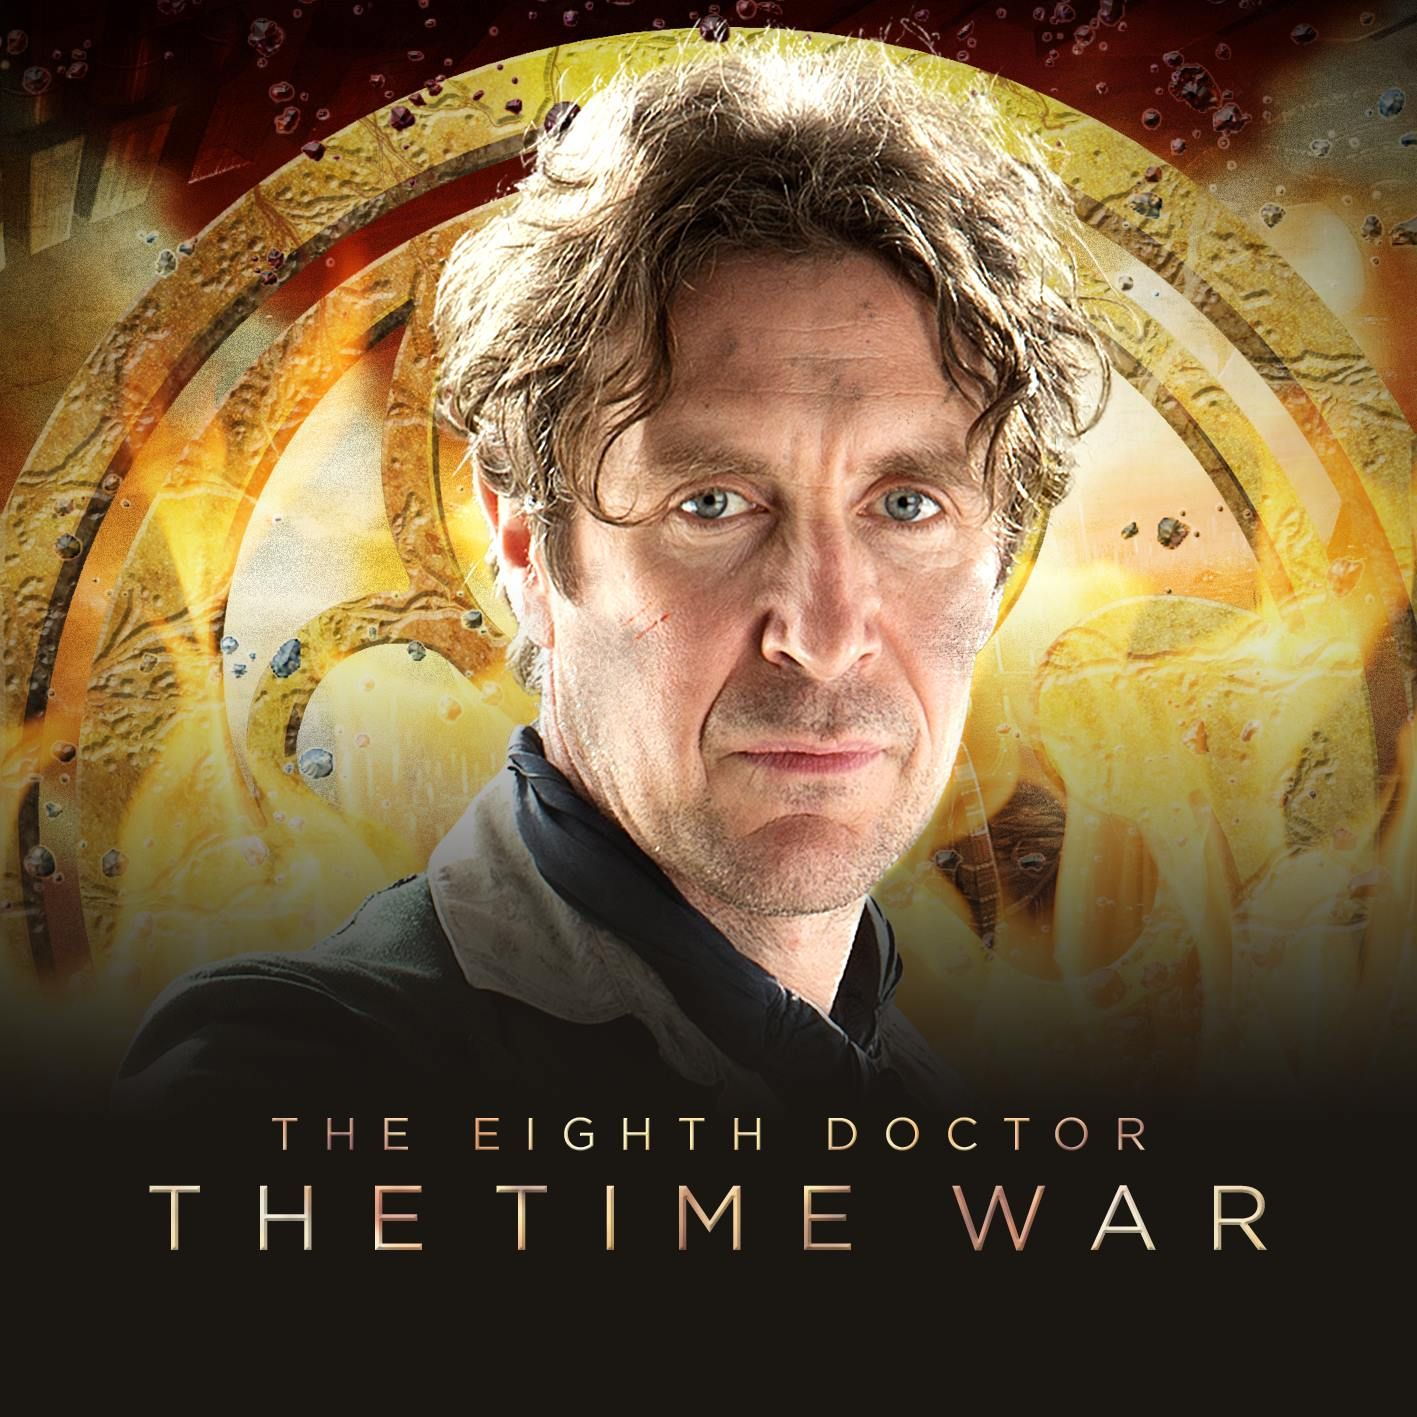 The Eighth Doctor - The Time War (Credit: Big Finish)